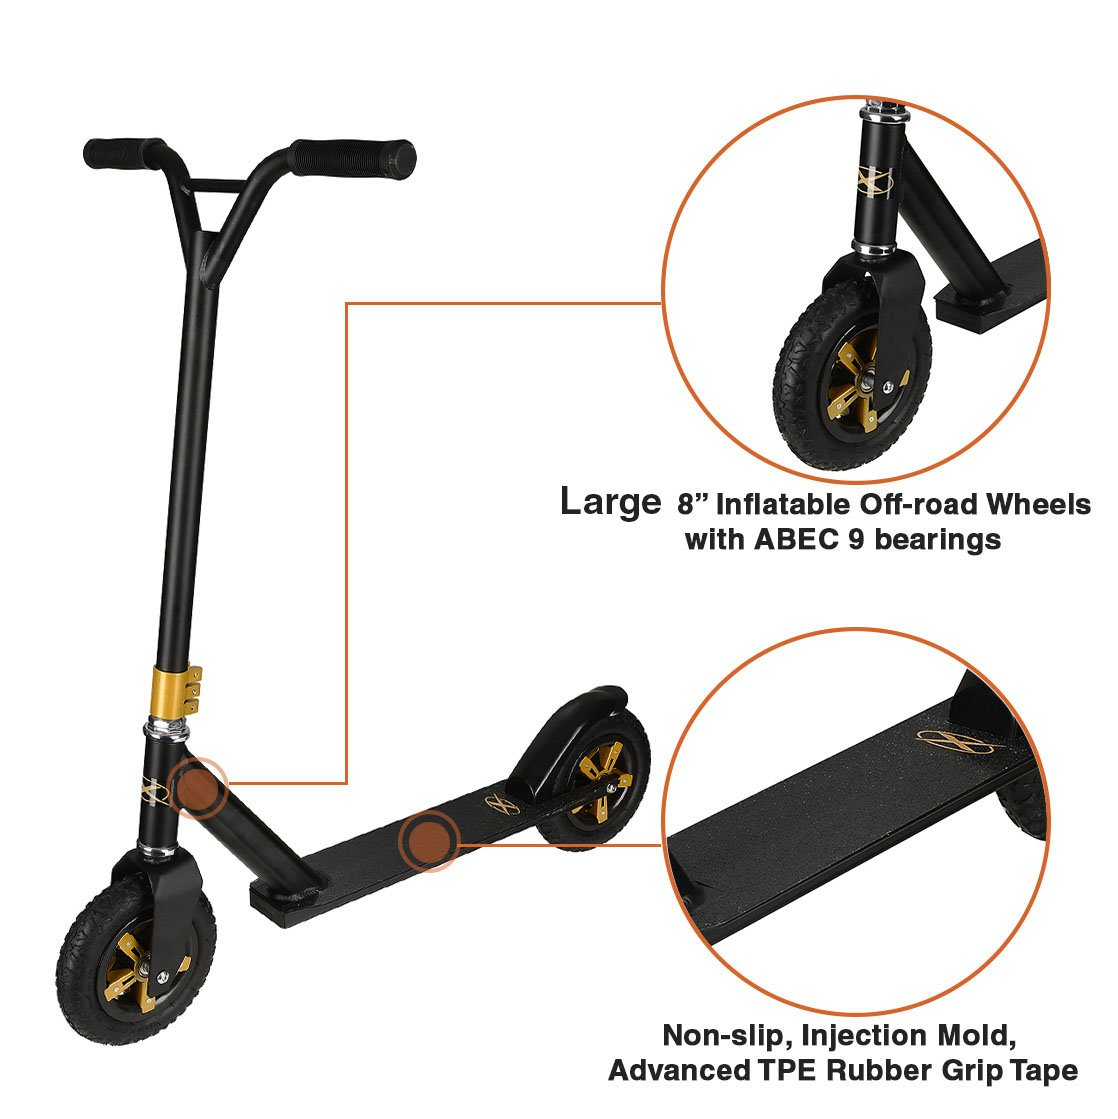 Xspec Aluminum Pro Stunt Dirt Kick Scooter Offroad Tires All Terrain Mountain, Matte Black & Gold, Oversized BMX Handlebars with 3-Bolt Clamp, Freestyle Fun Kids Outdoor Sports by Xspec